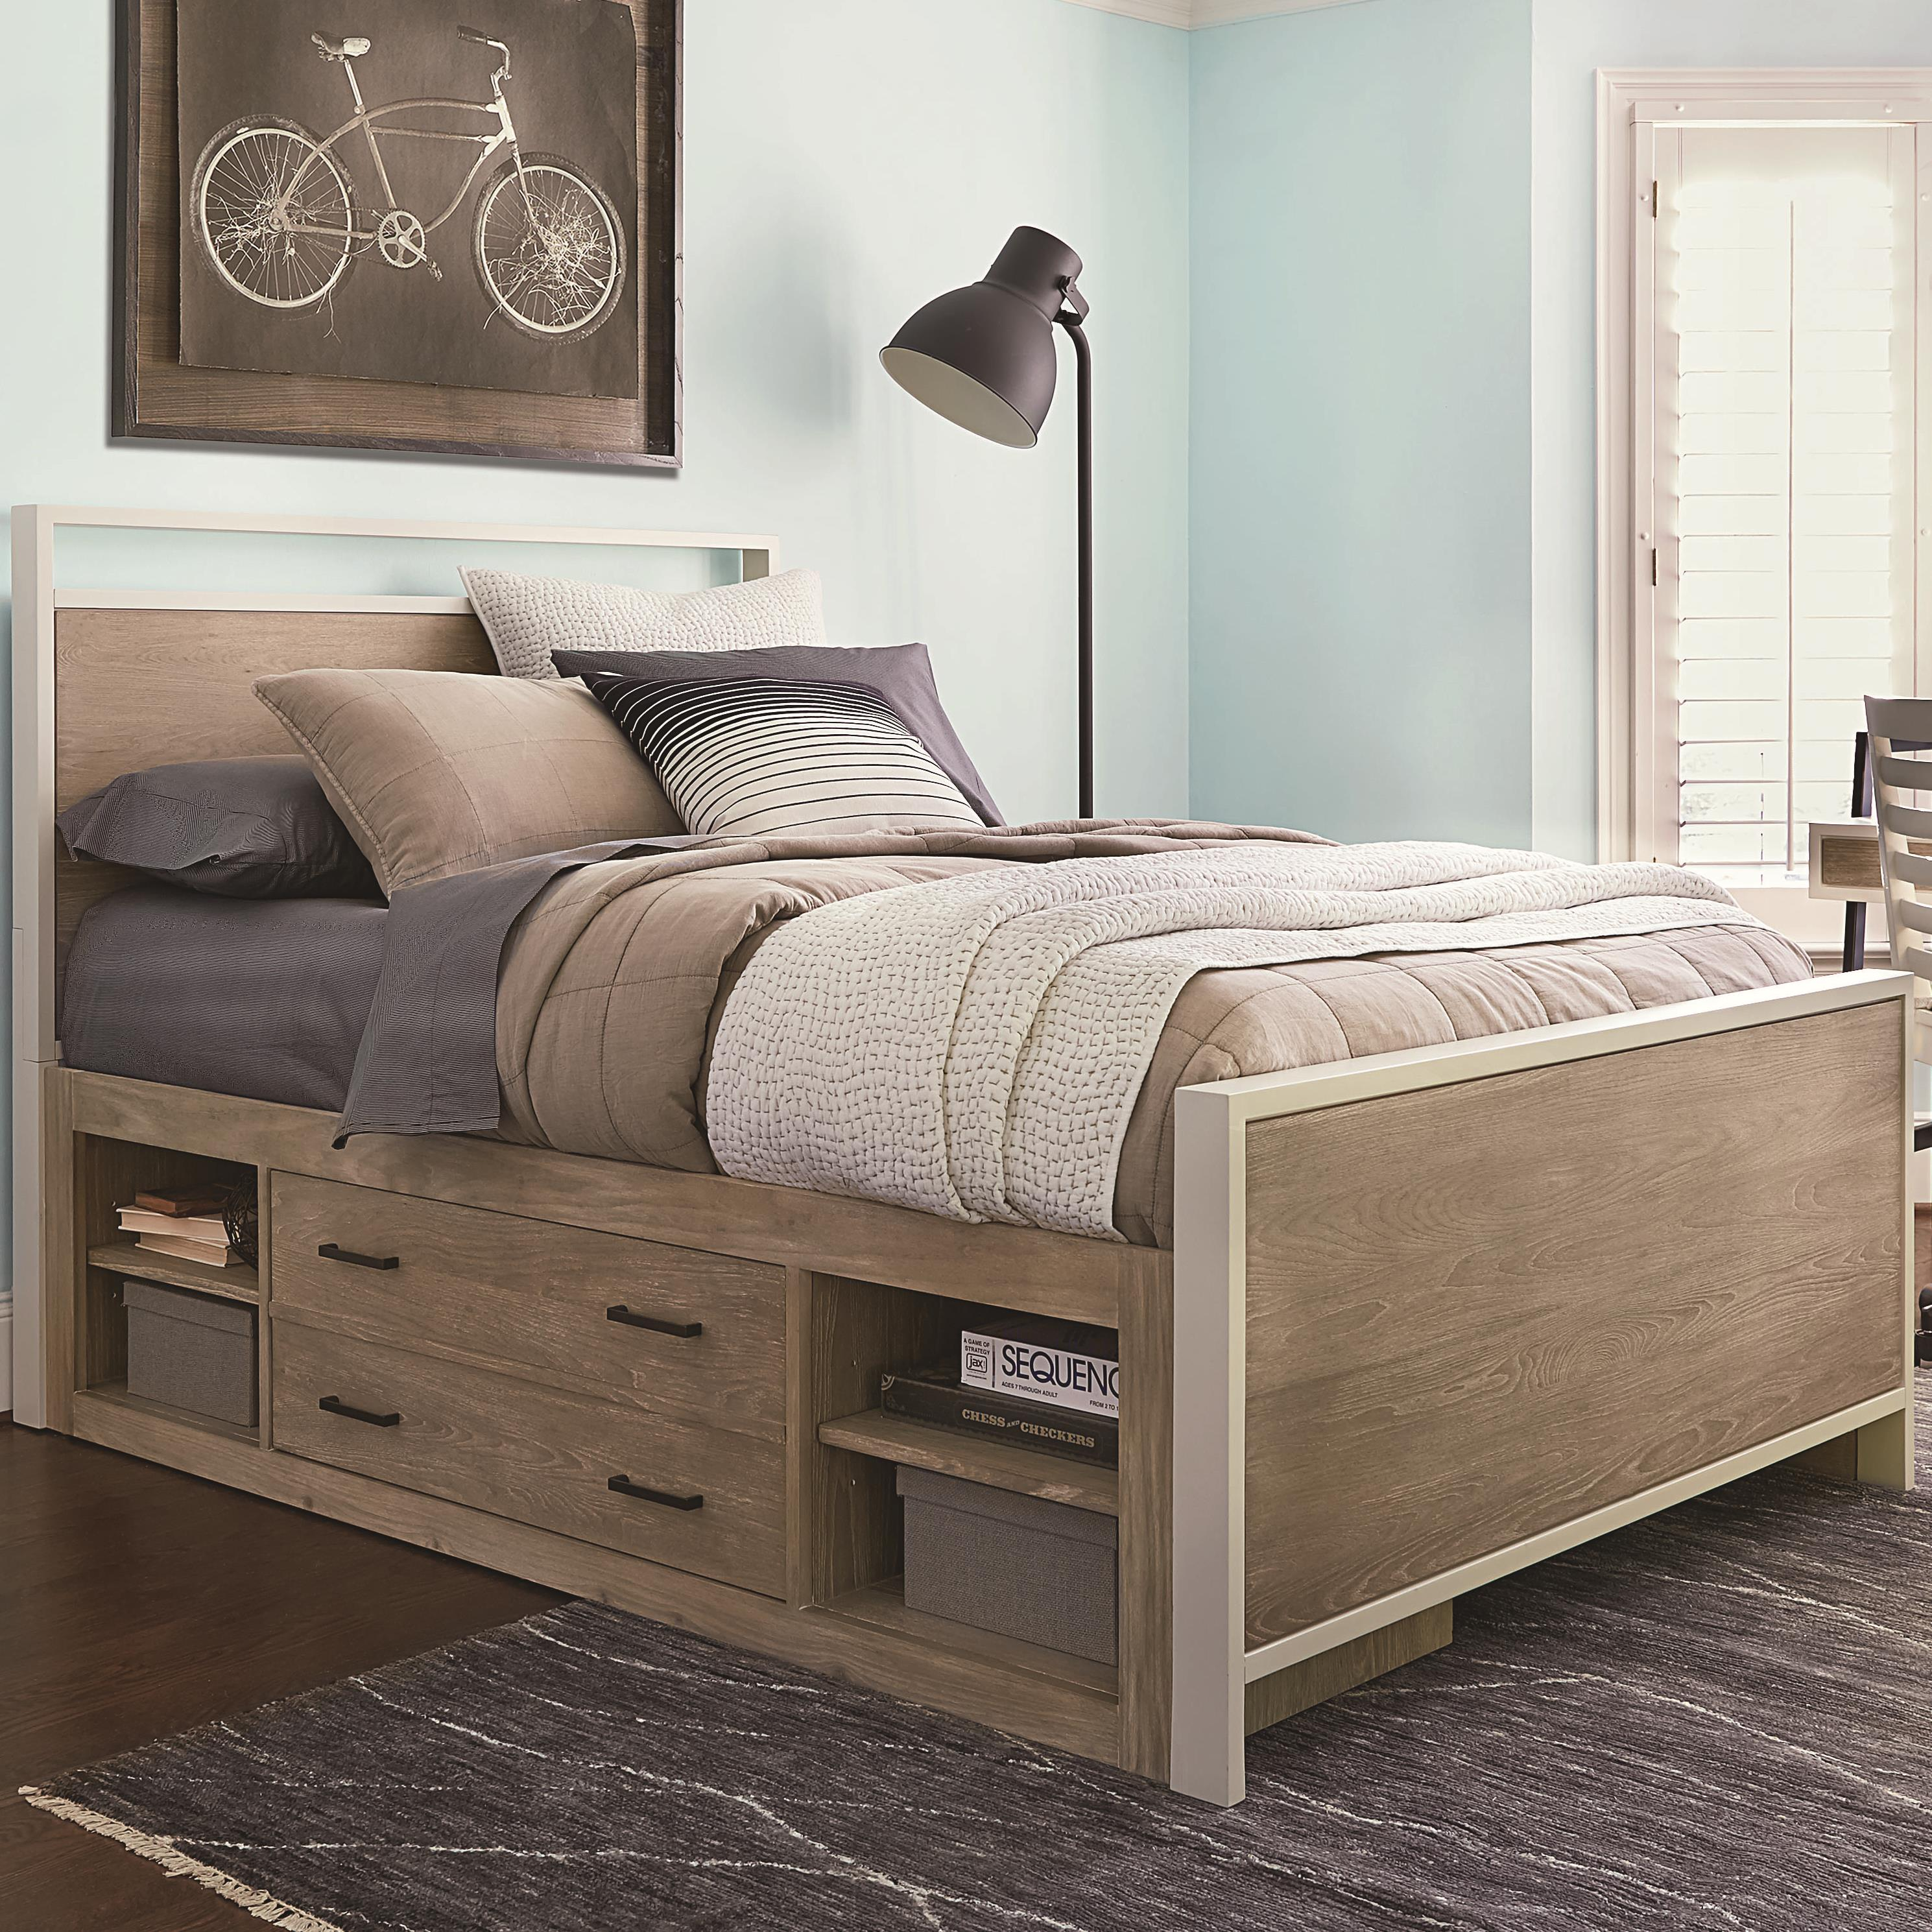 Smartstuff Myroom Full Panel Bed With Underbed Storage Reeds Furniture Panel Beds